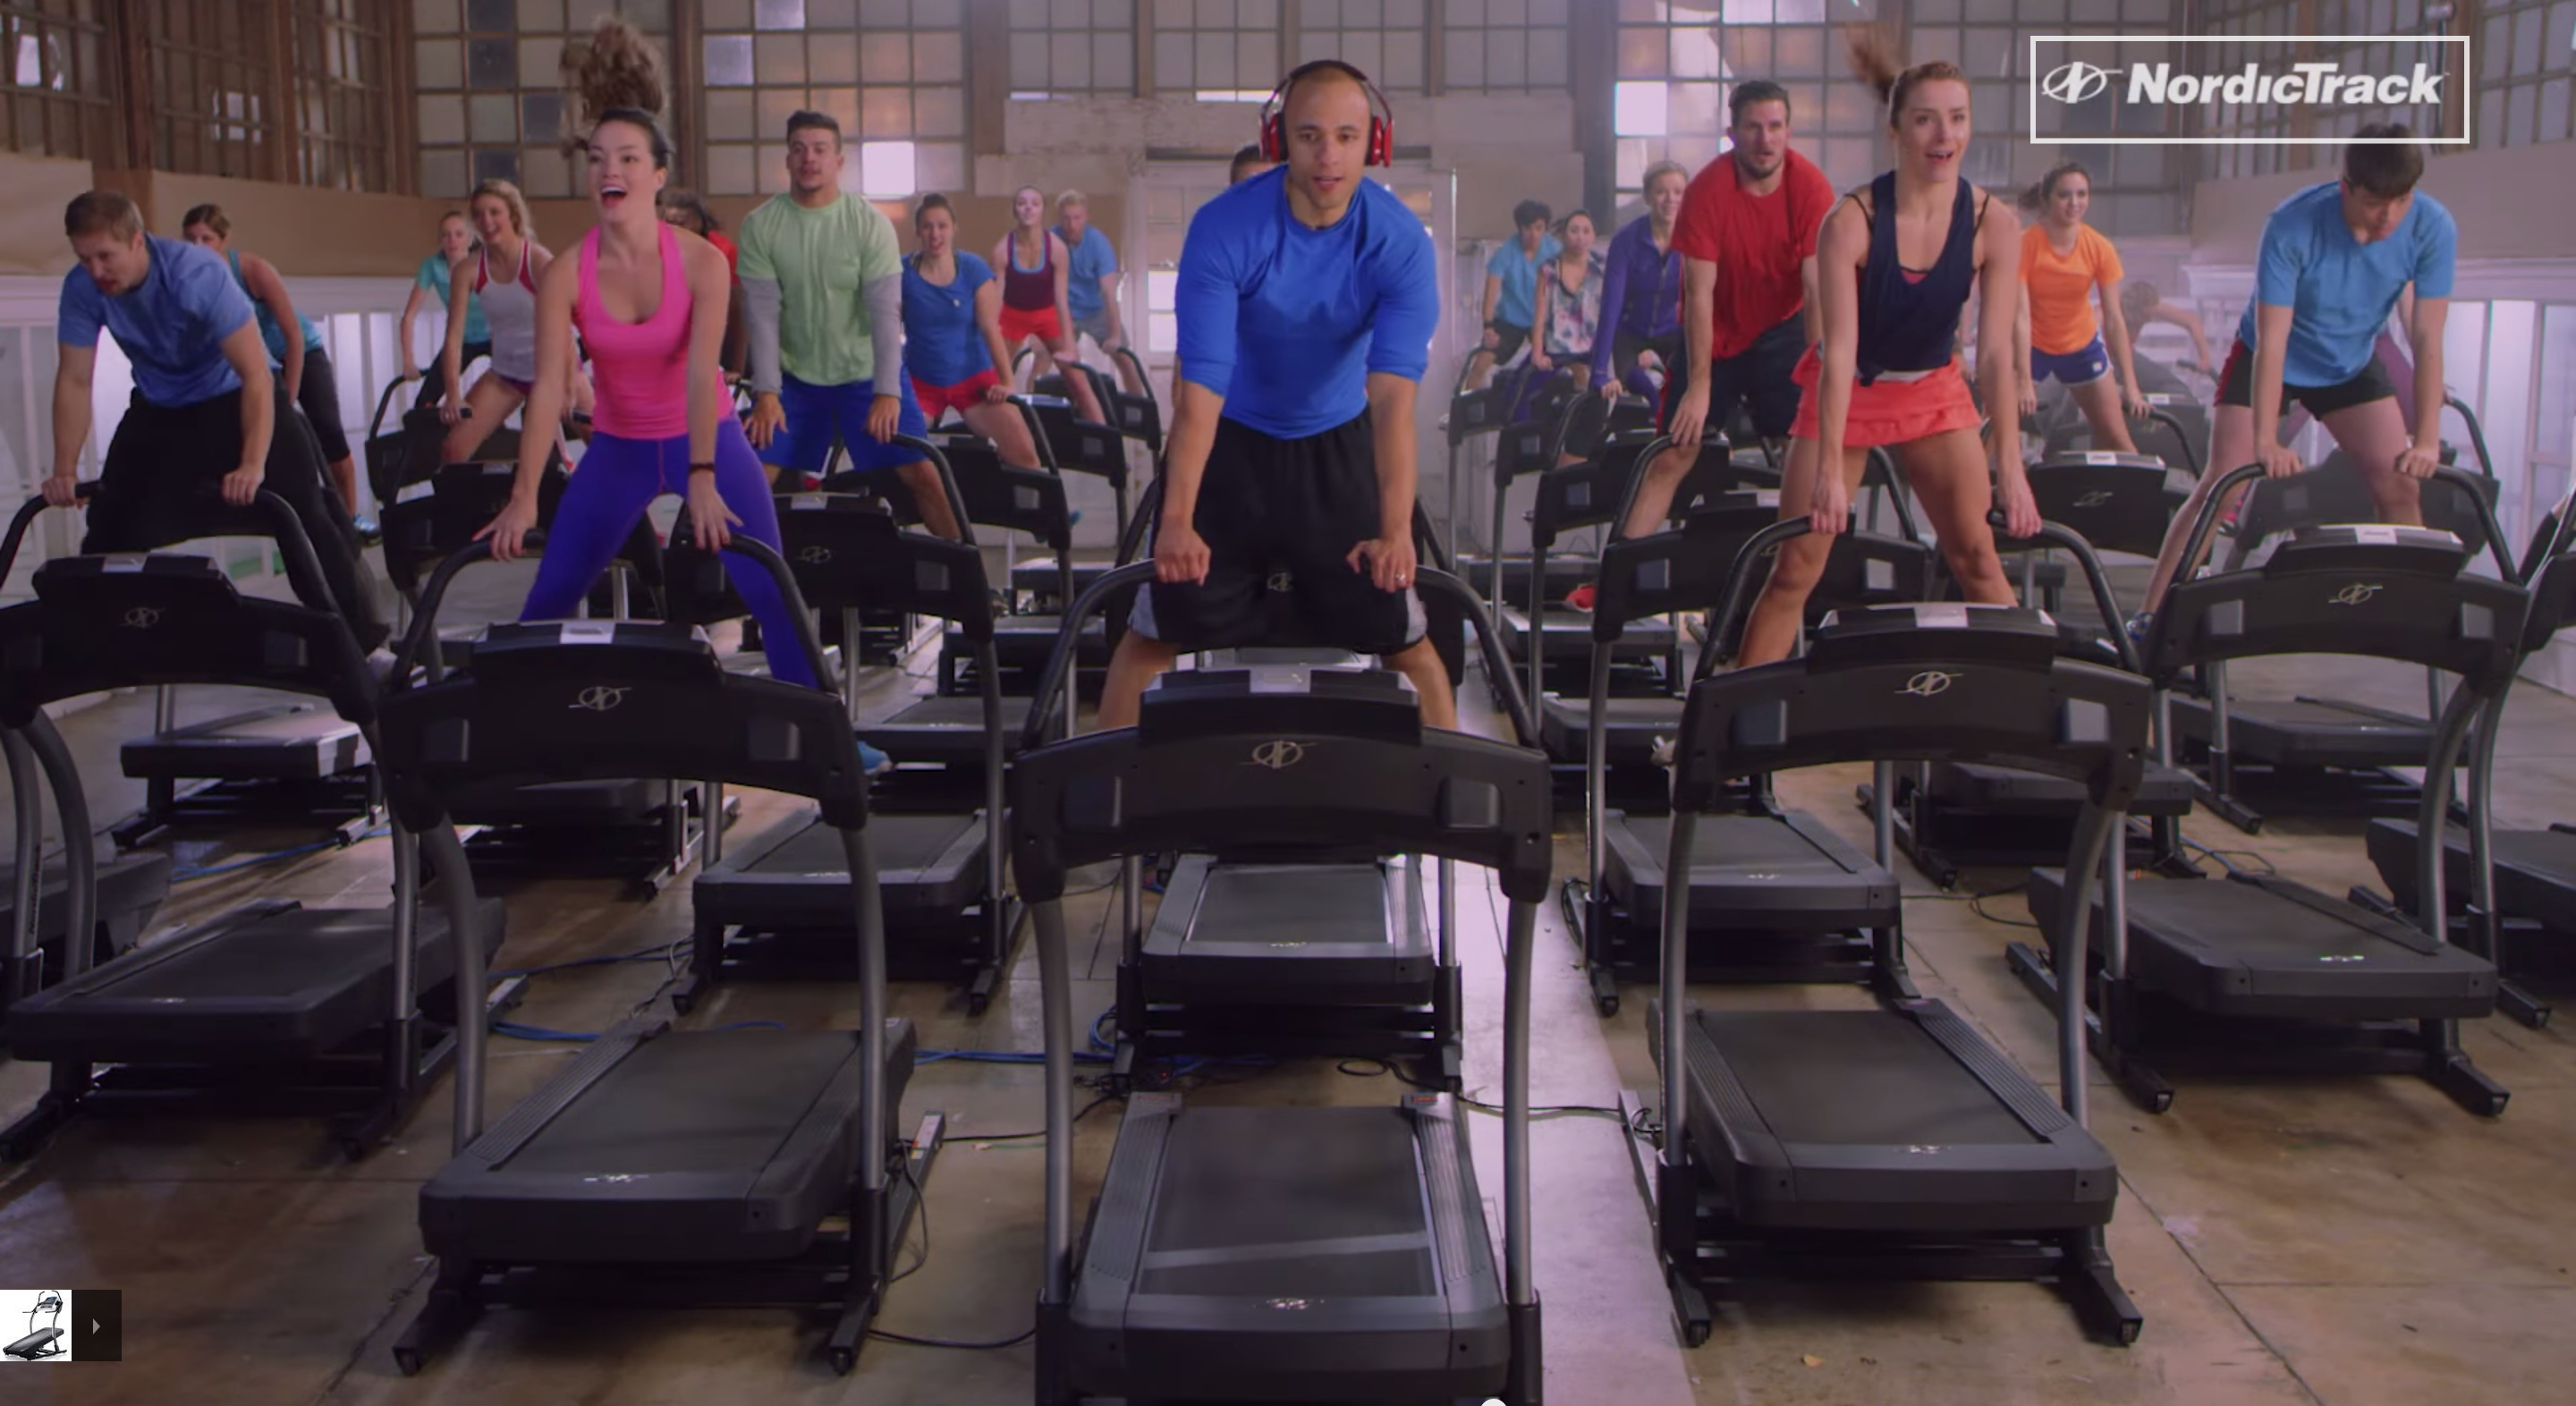 NordicTrack Organizes World's Largest Treadmill Dance - 45